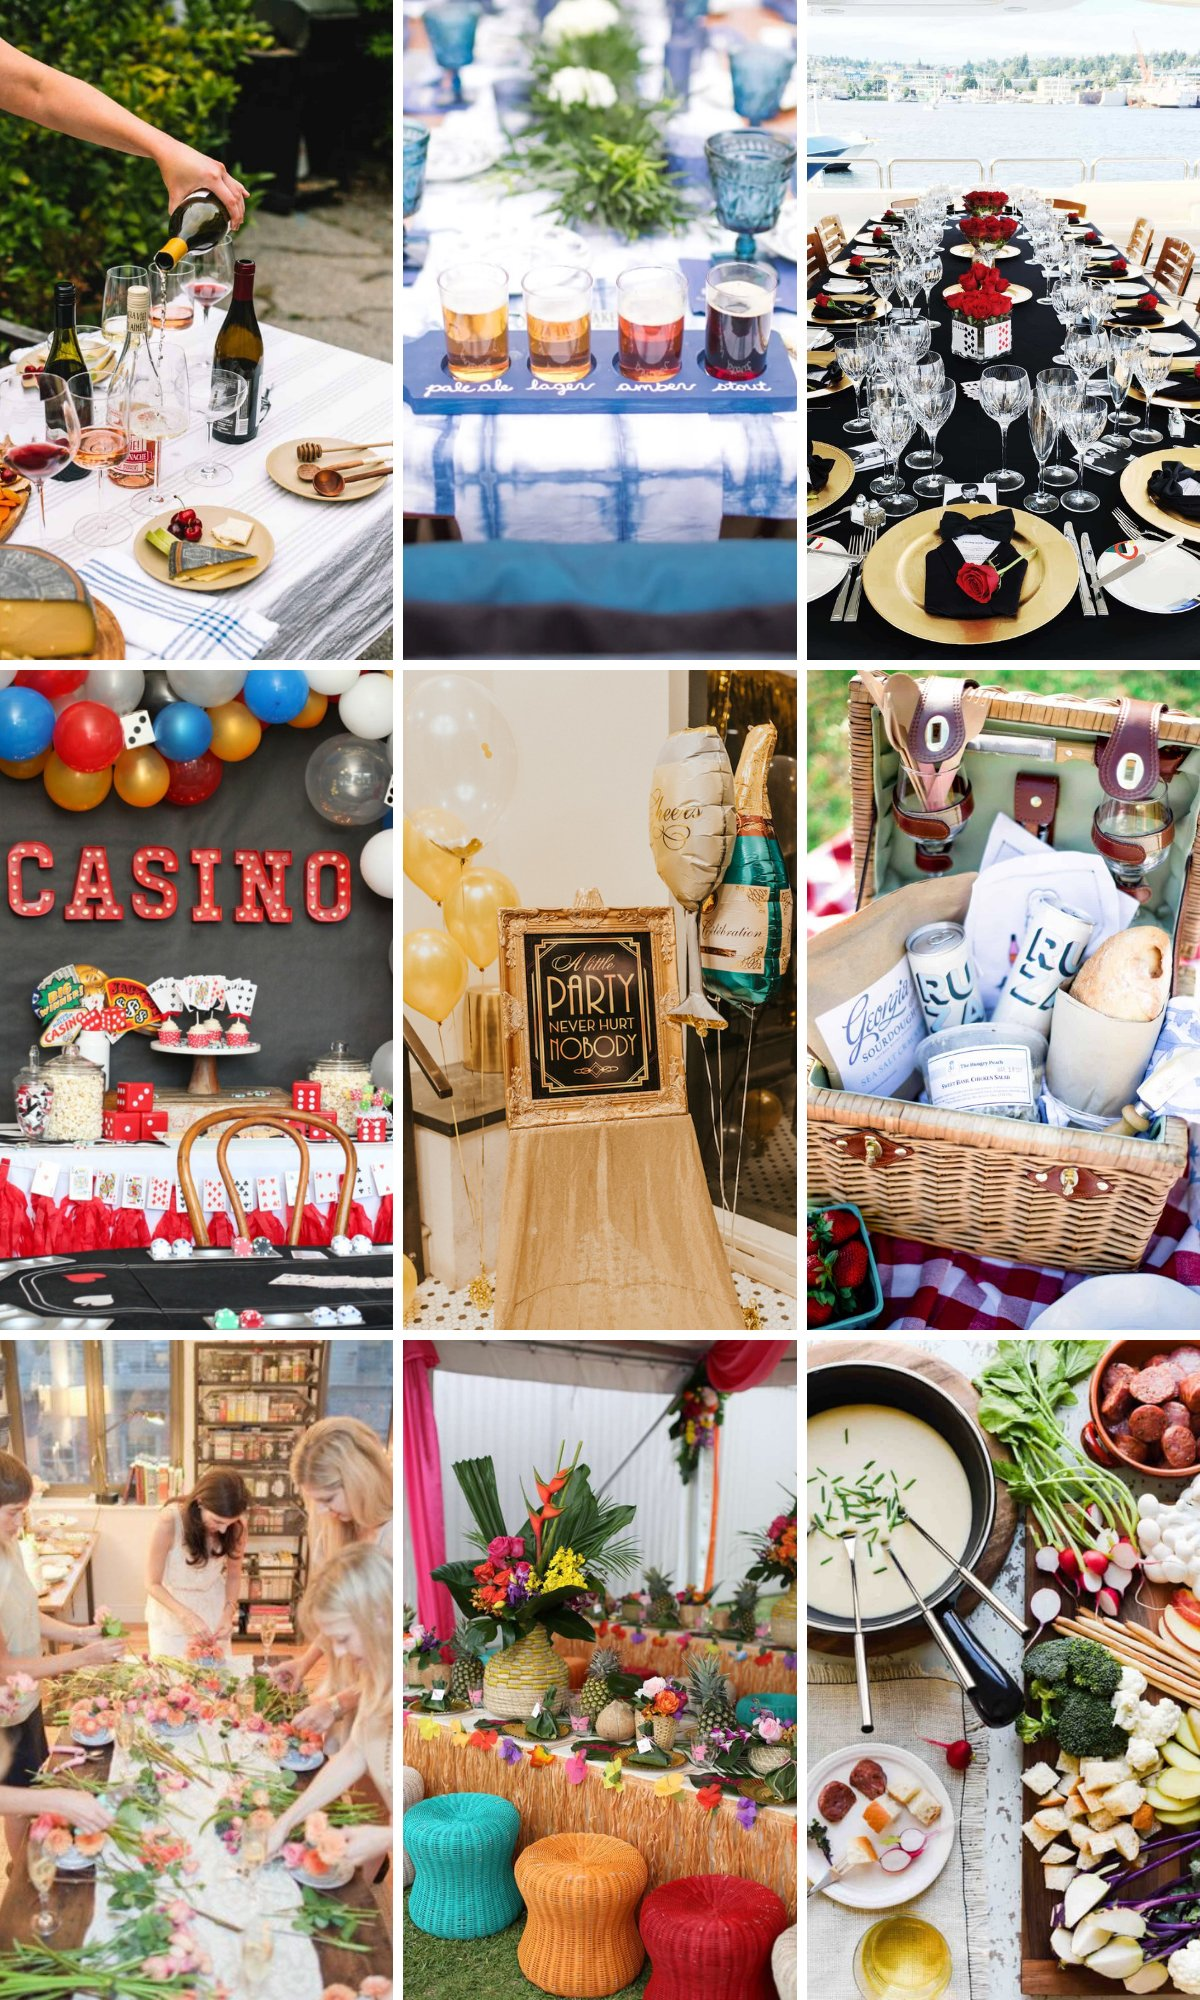 Best Party Themes for Adults (Tons of Theme Ideas)